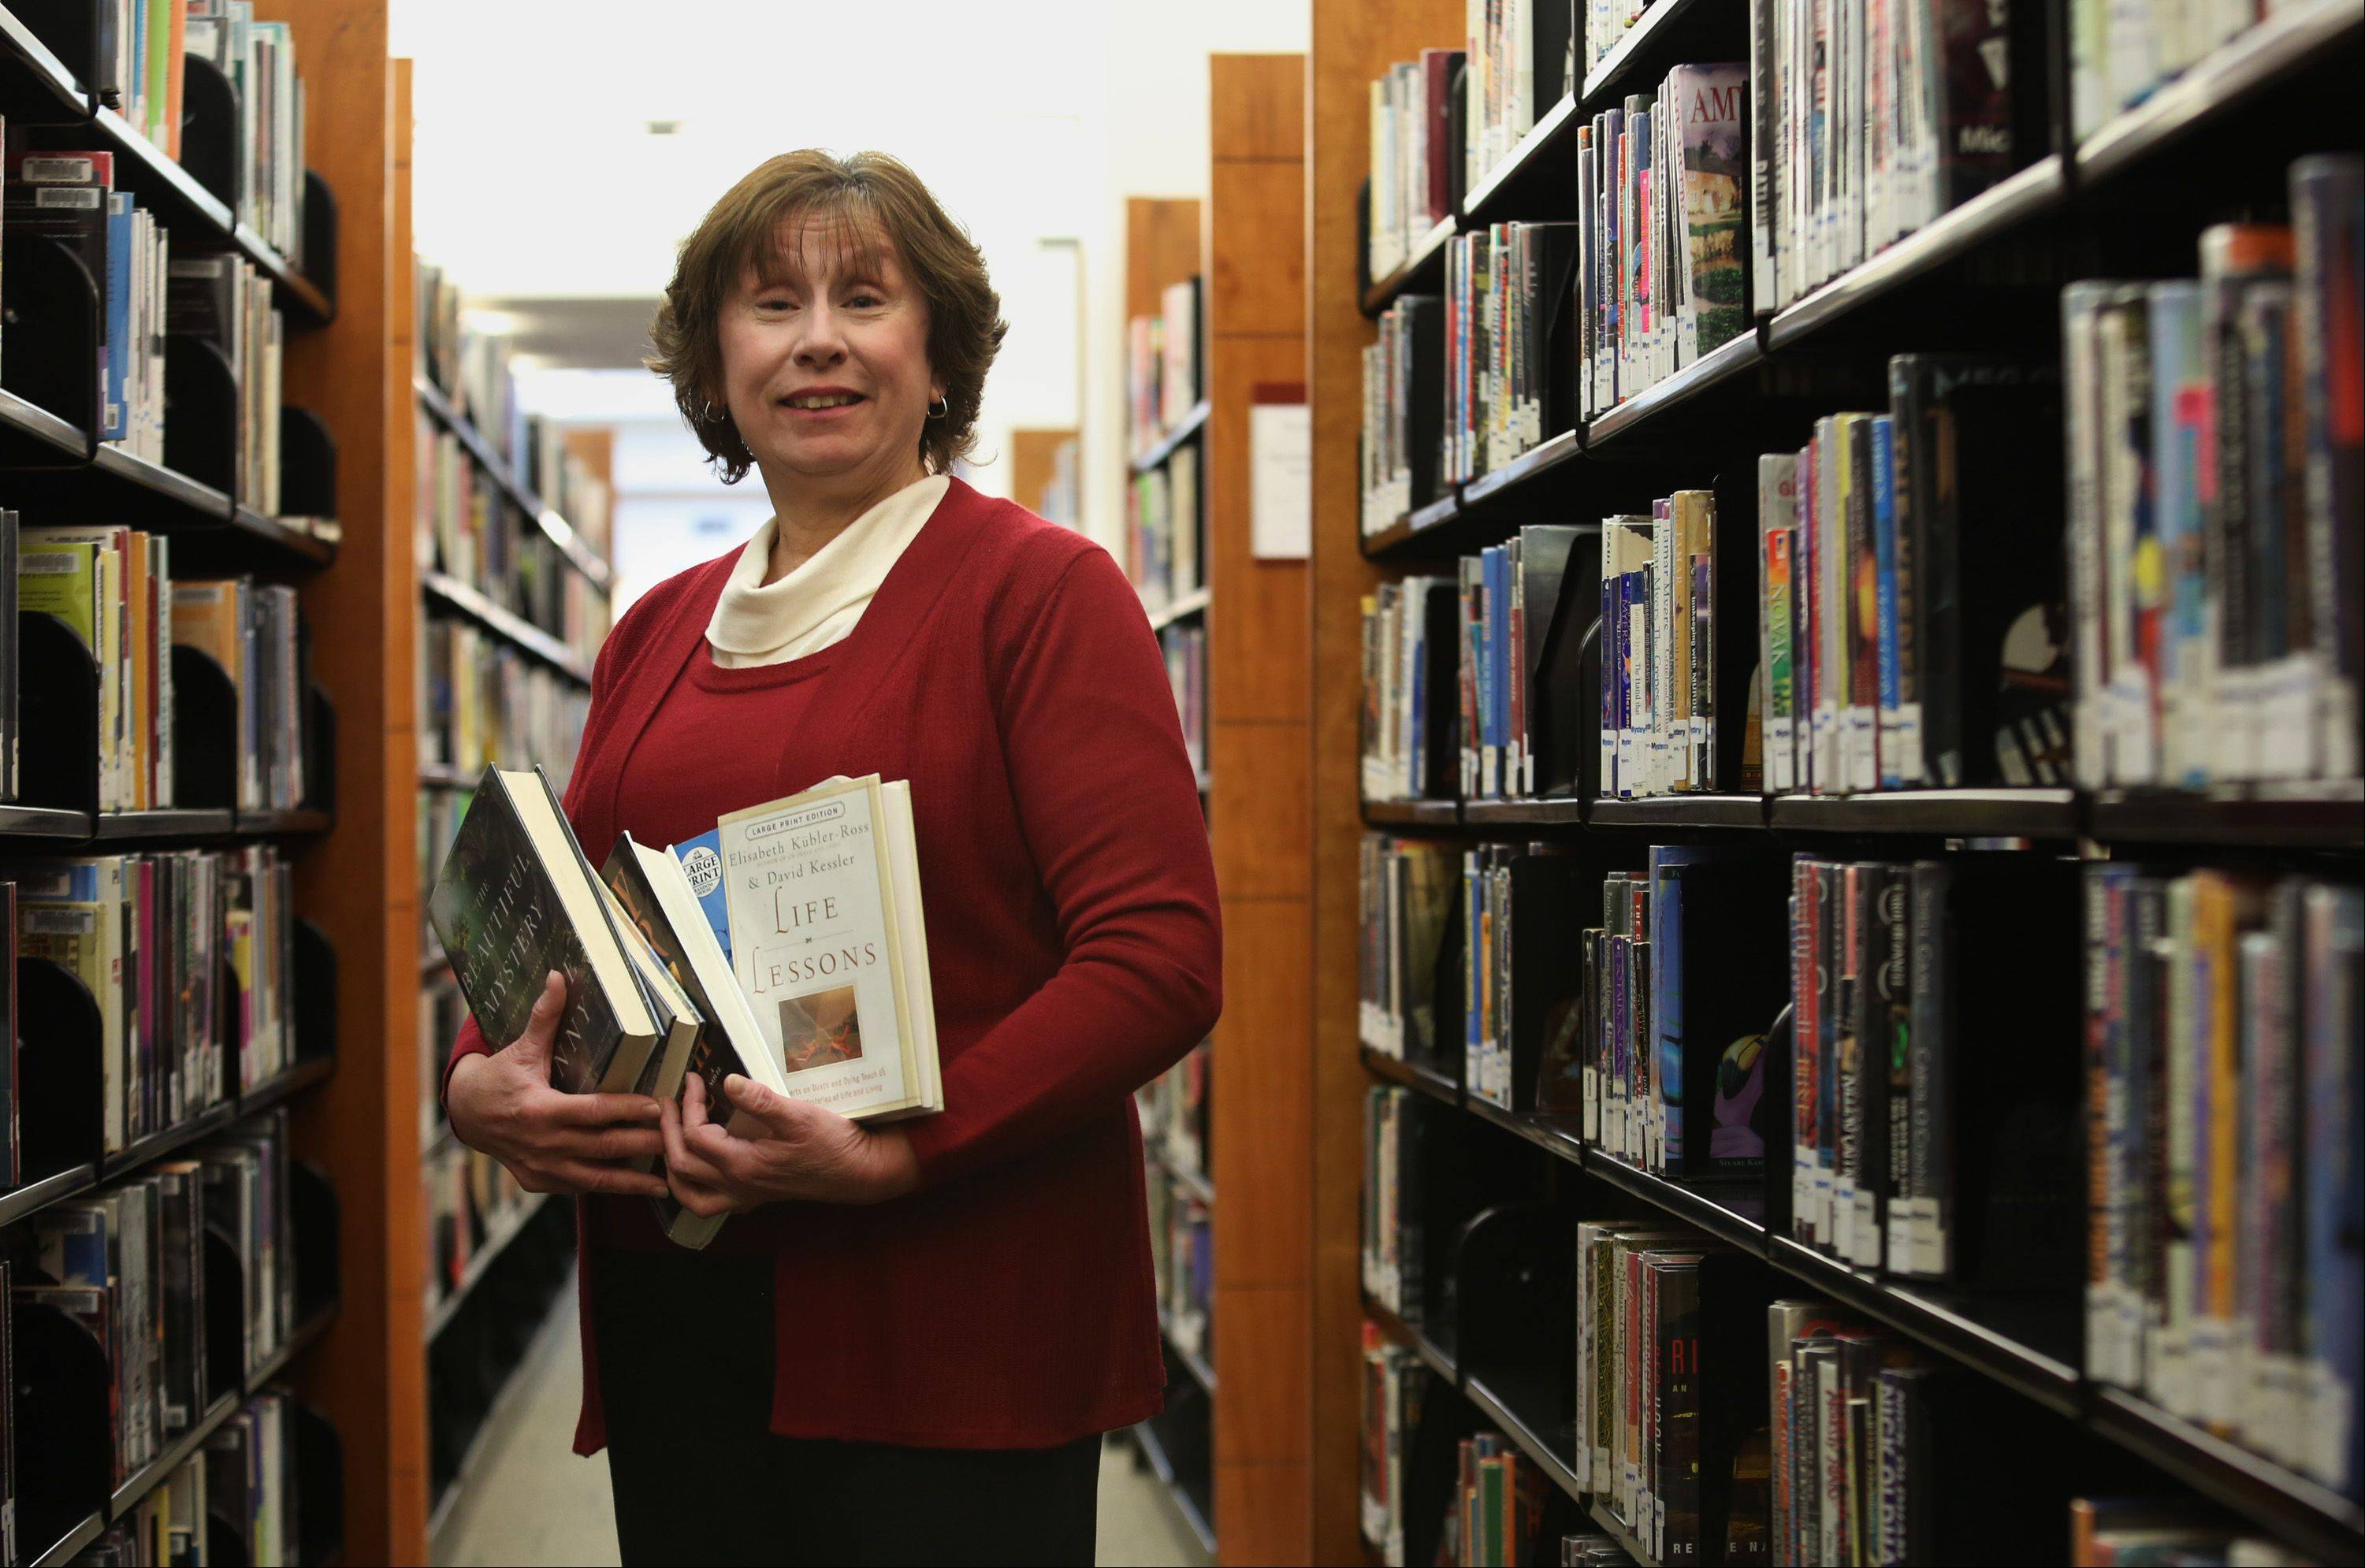 Carole Medal, executive director of the Gail Borden Public Library in Elgin, was named Librarian of the Year by the Illinois Library Association.